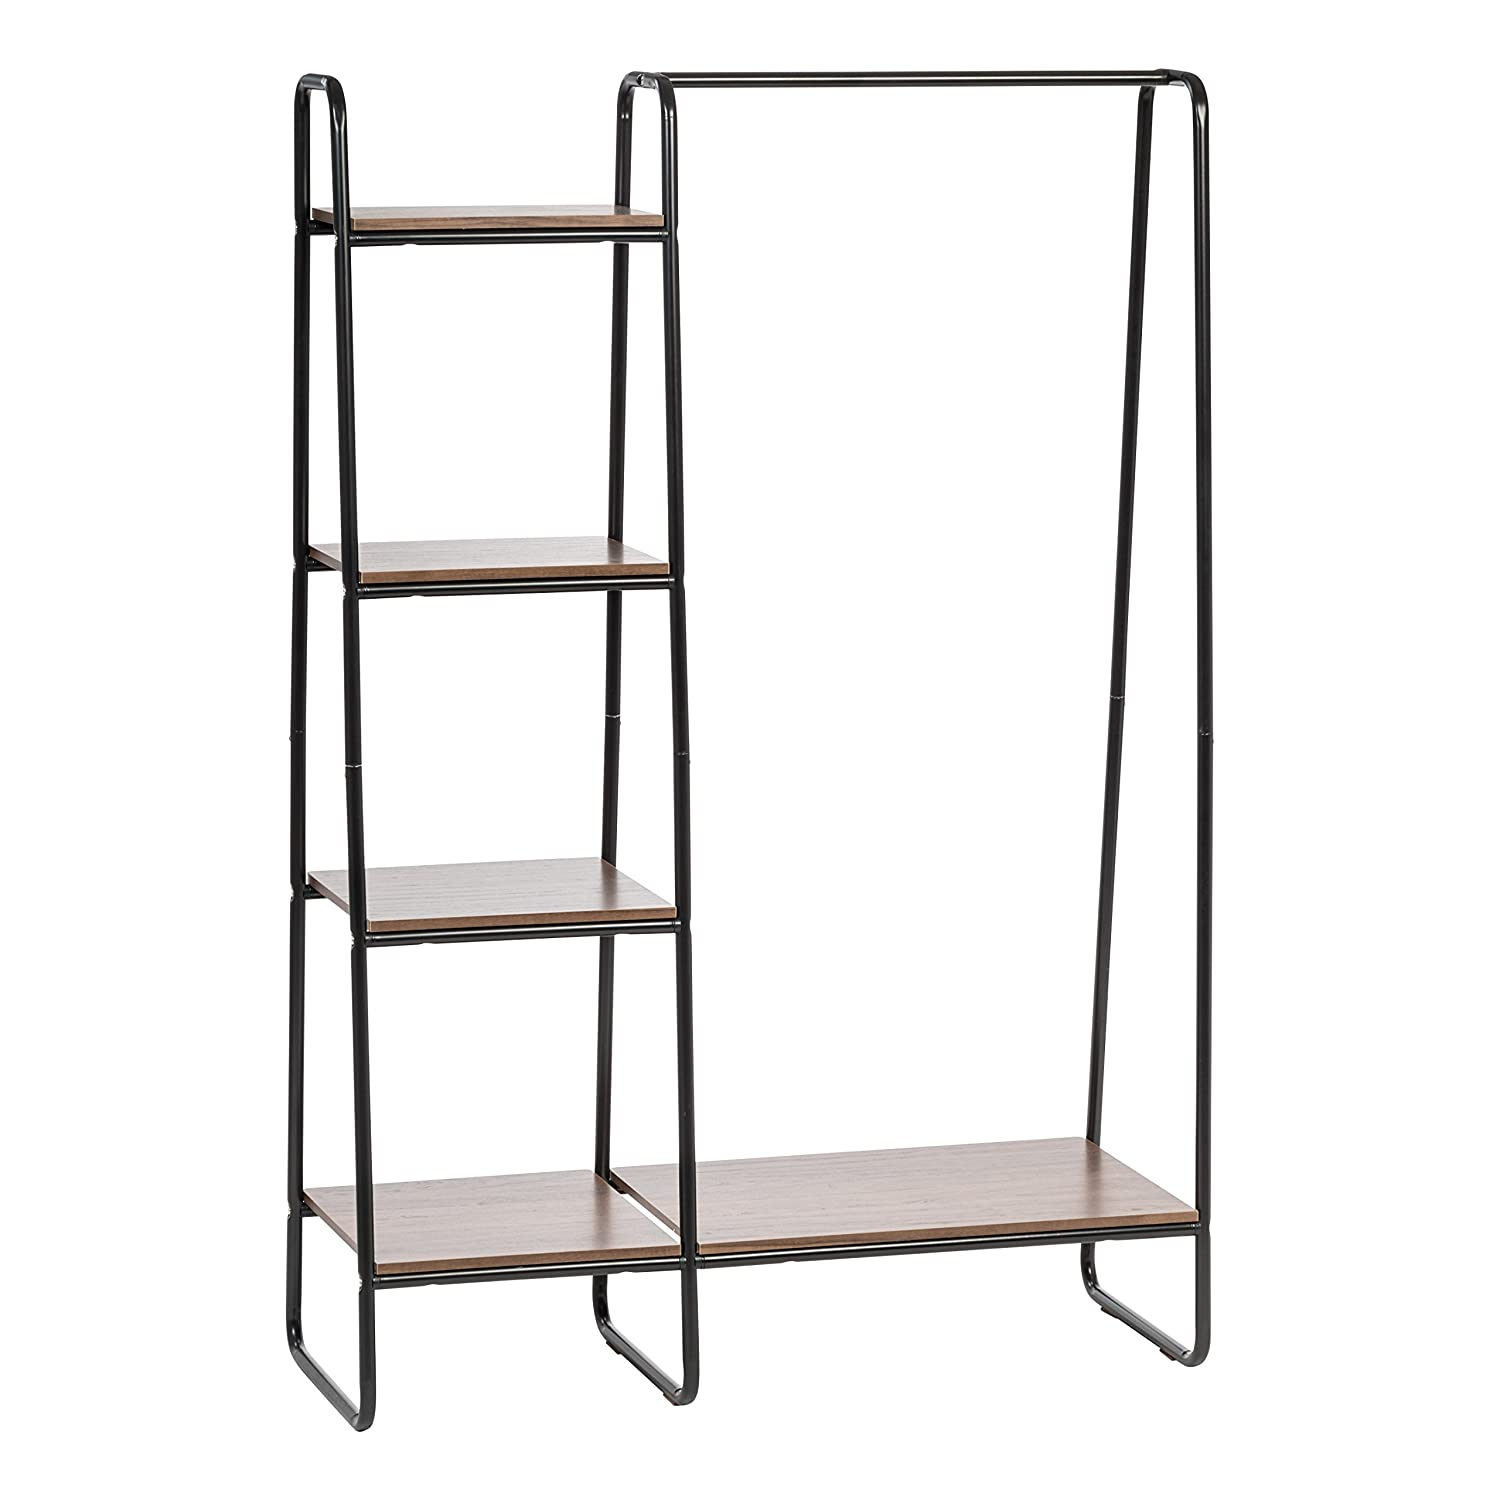 IRIS USA, Inc. 596240 PI-B3 IRIS Metal Garment Rack with Wood Shelves, Black/Dark Brown